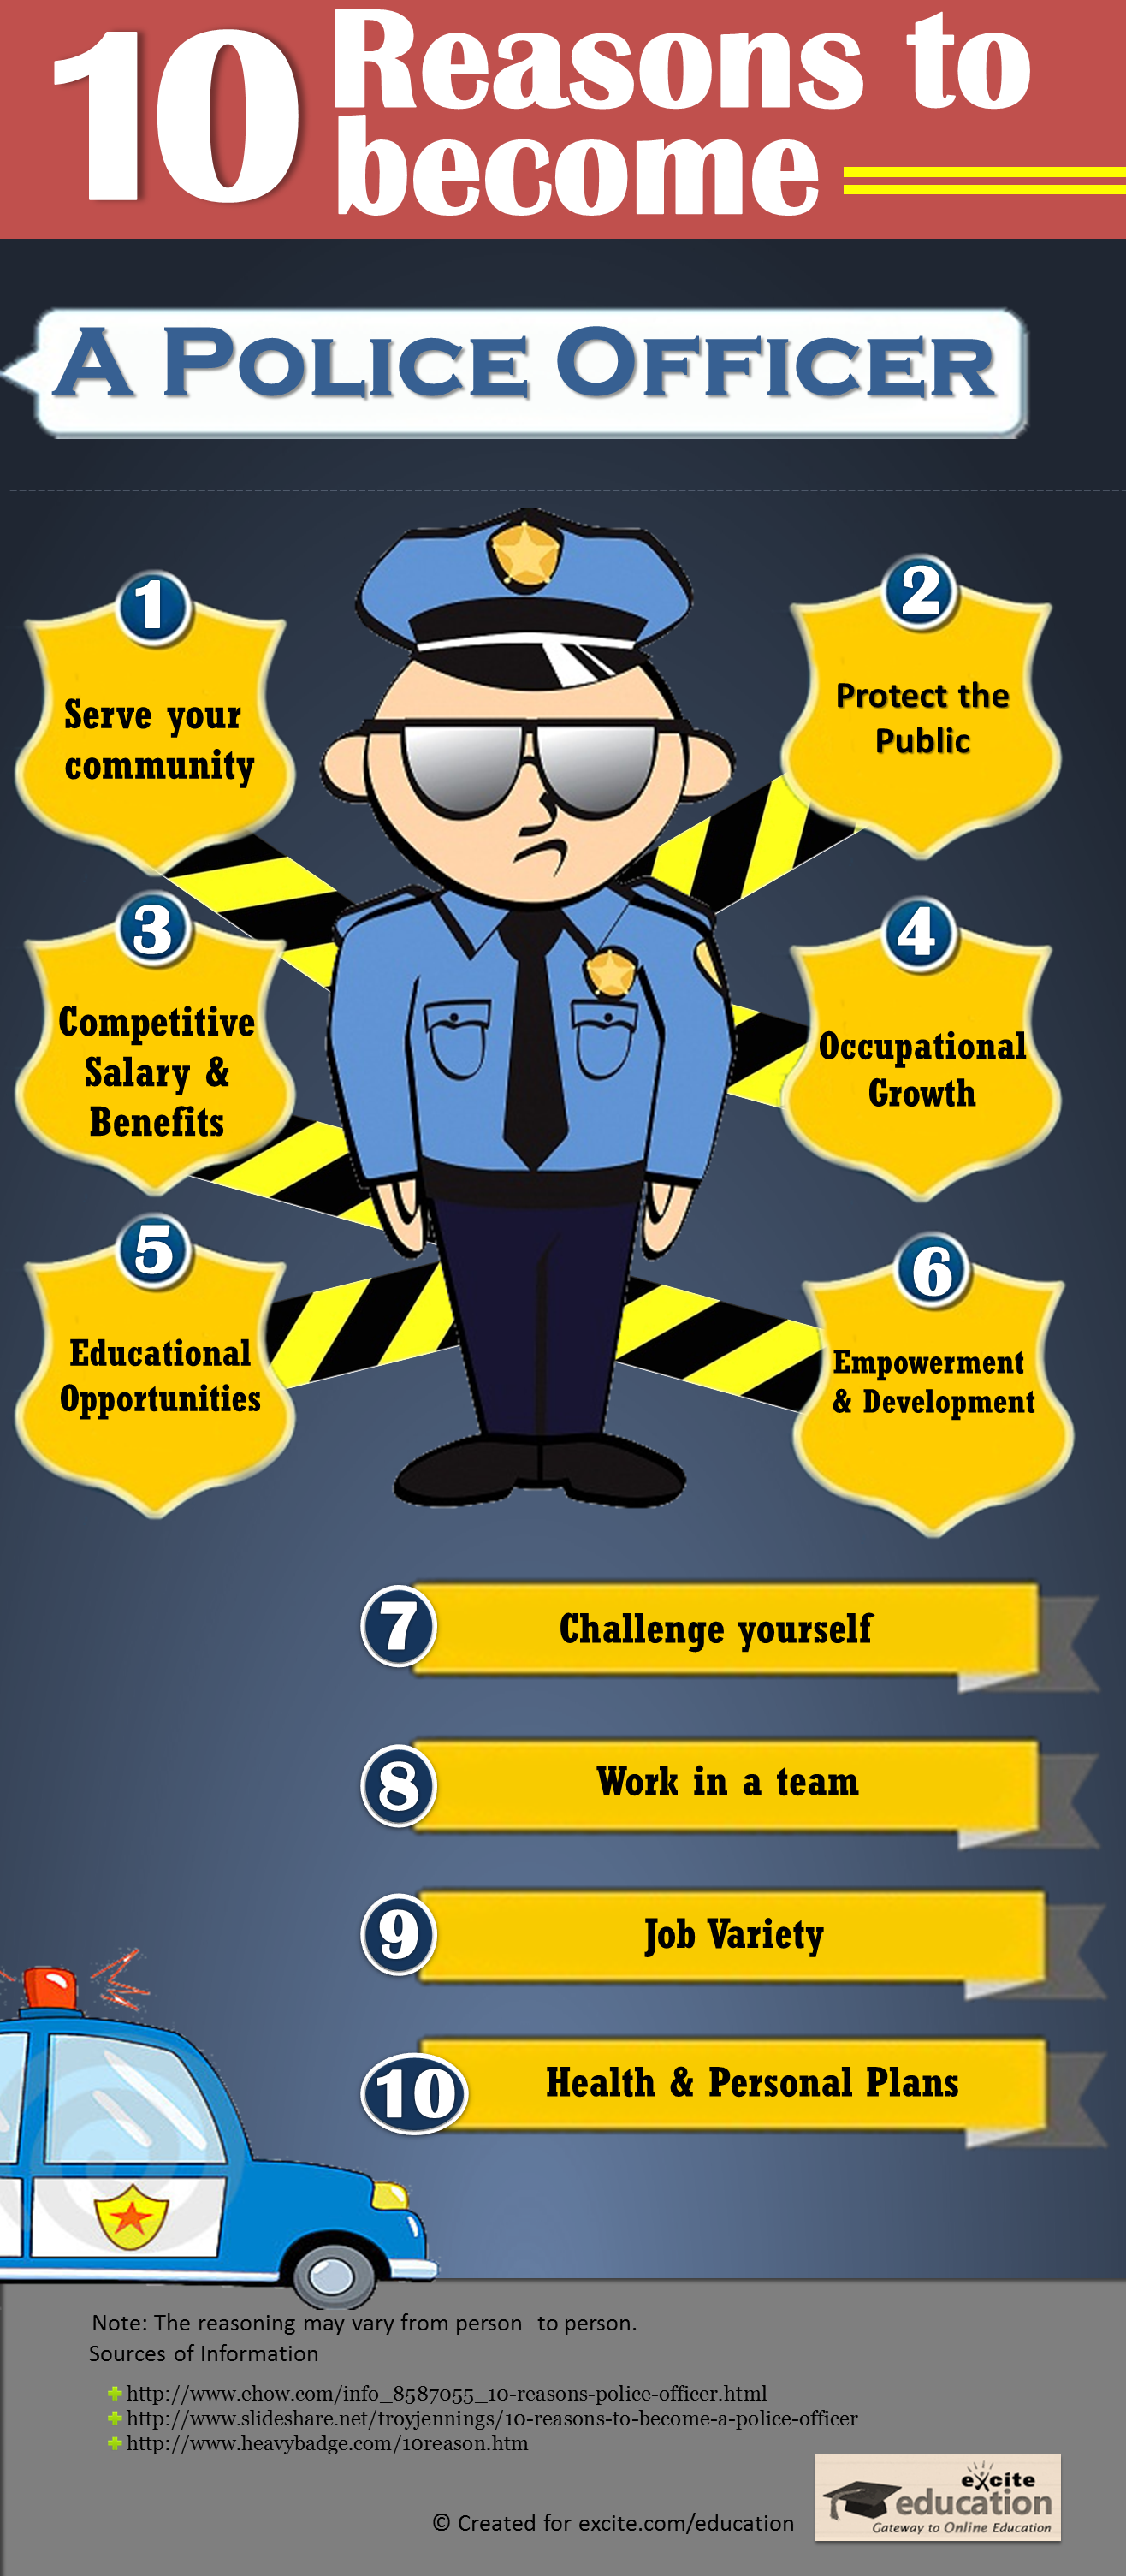 17 best images about training becoming a police officer on 17 best images about training becoming a police officer 9 police departments and emergency response